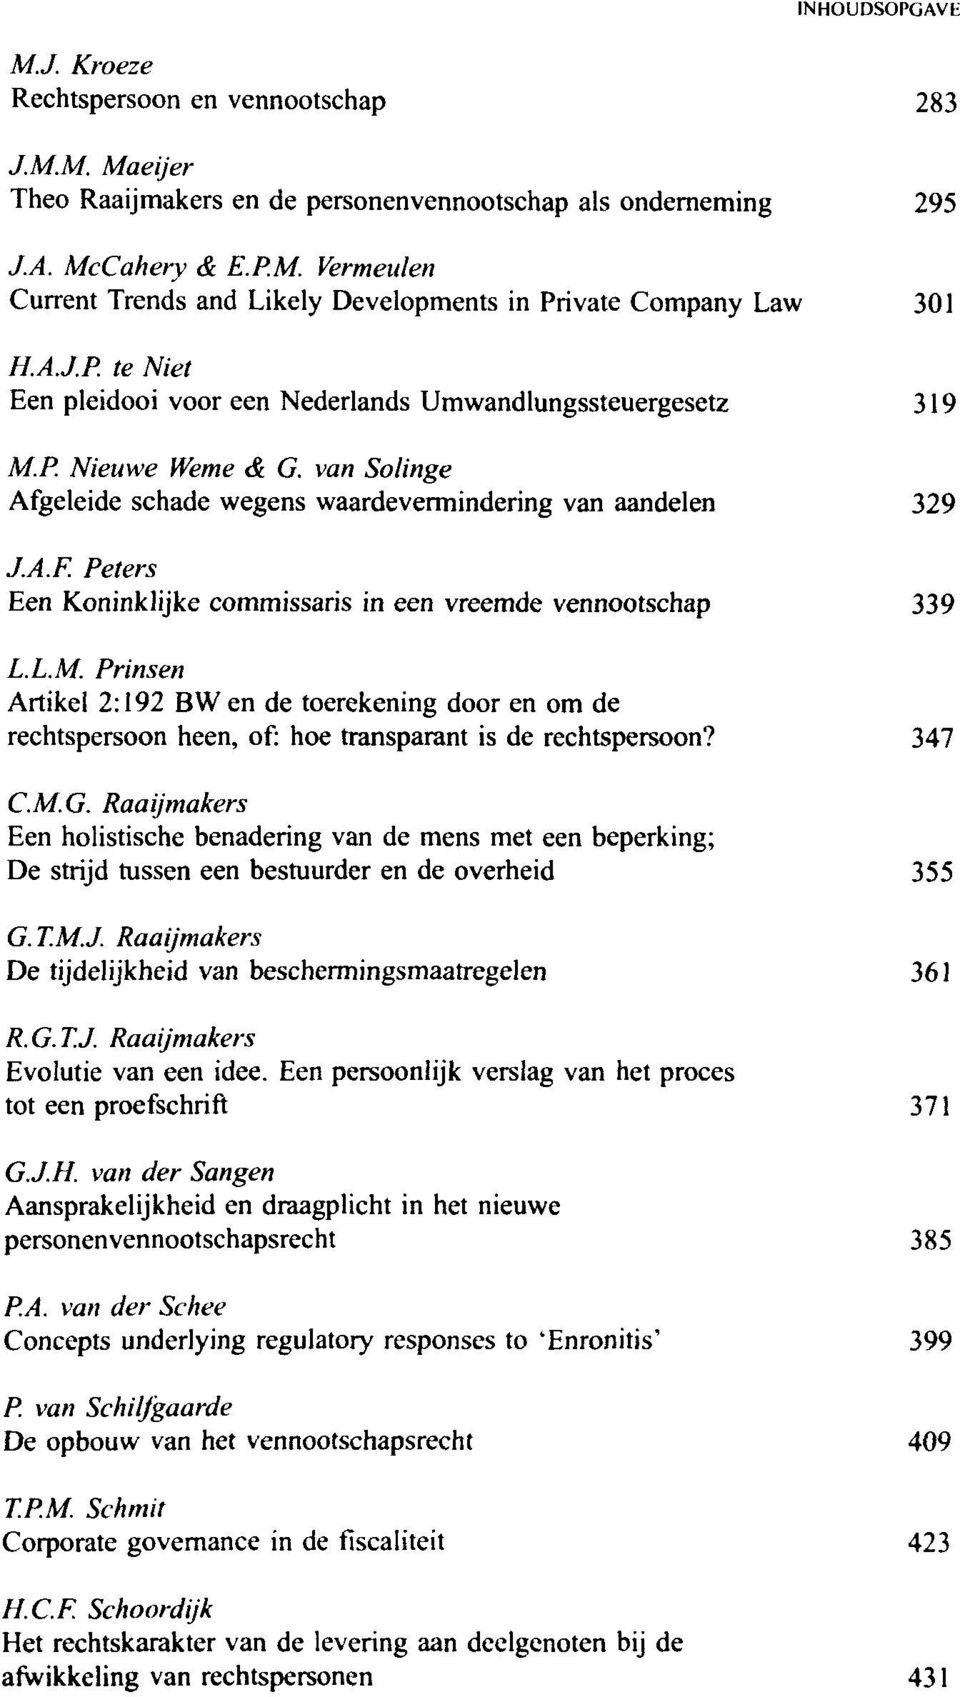 Peters Een Koninklijke commissaris in een vreemde vennootschap 339 L.L.M. Prinsen Artikel 2:192 BWen de toerekening door en om de rechtspersoon heen, of: hoe transparent is de rechtspersoon? 347 C.M.G.